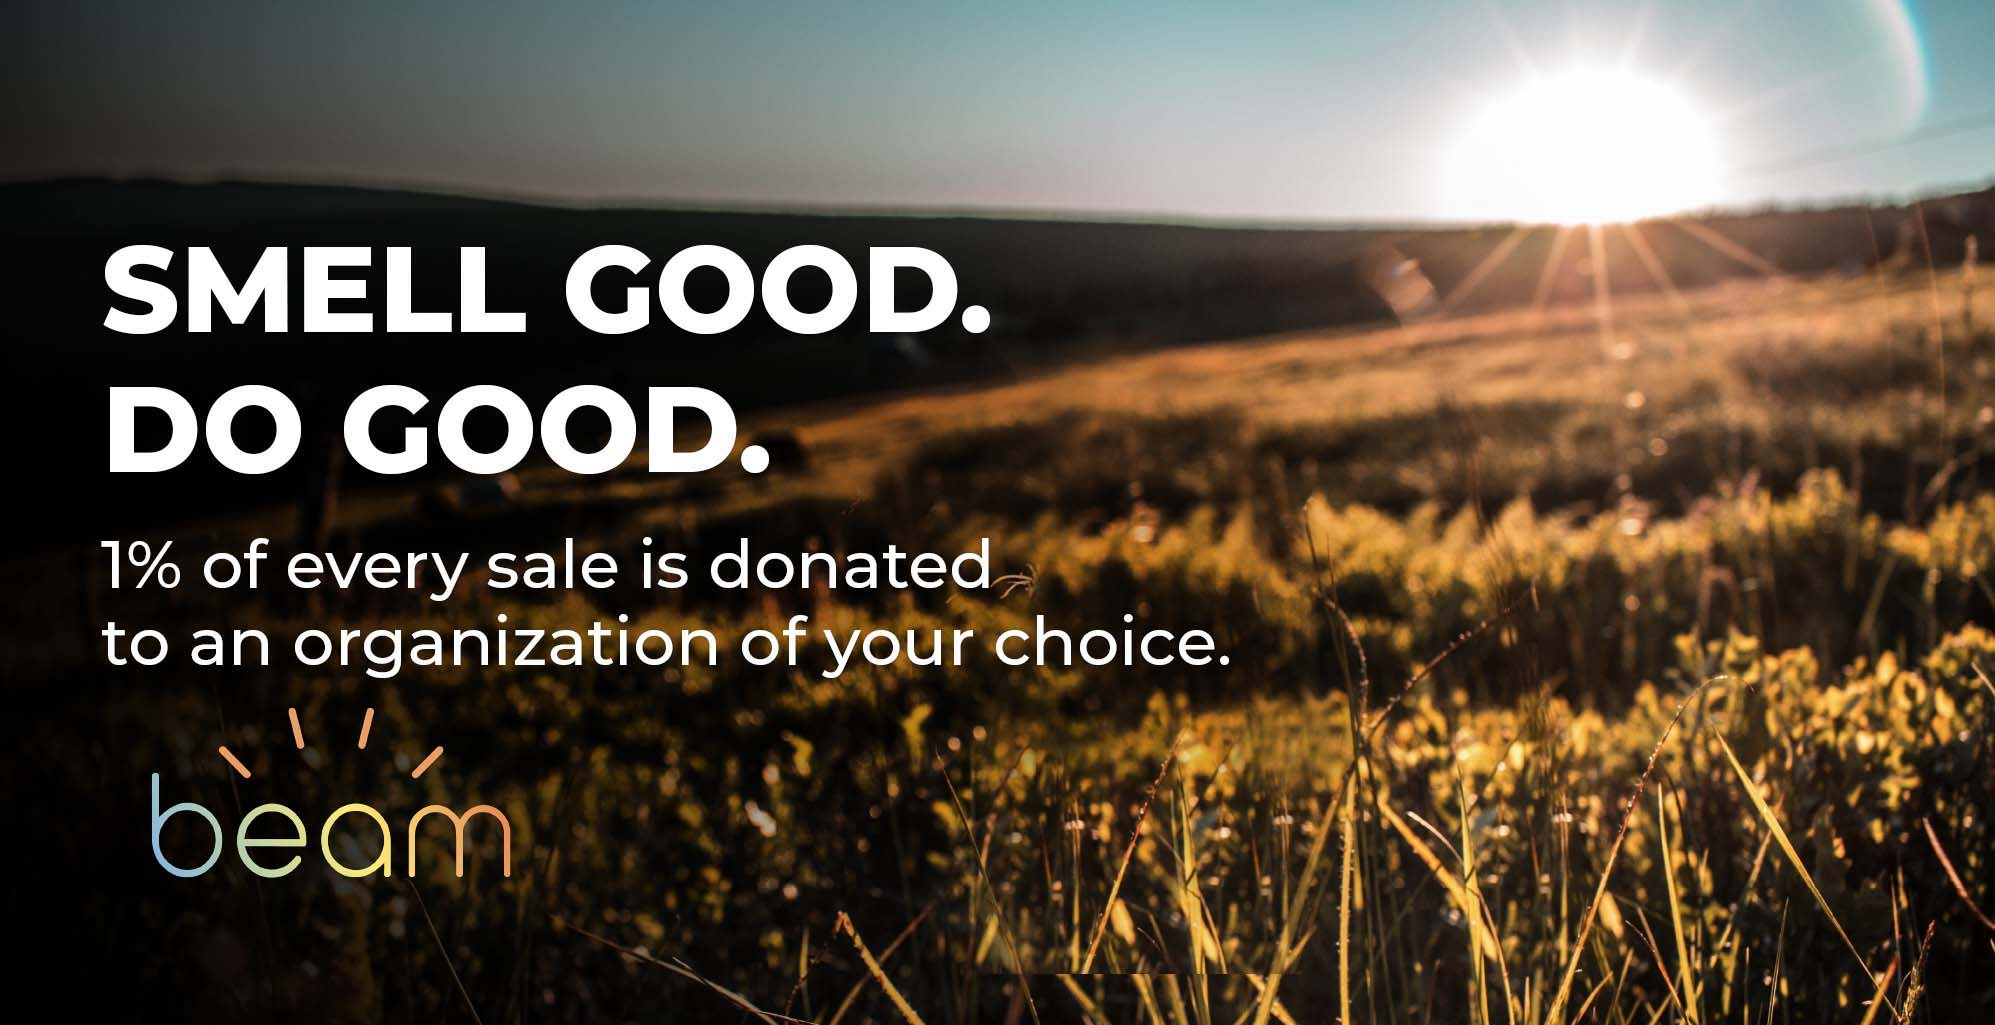 smell good. do good. 1 % of every sale is donated to an organization of your choice.